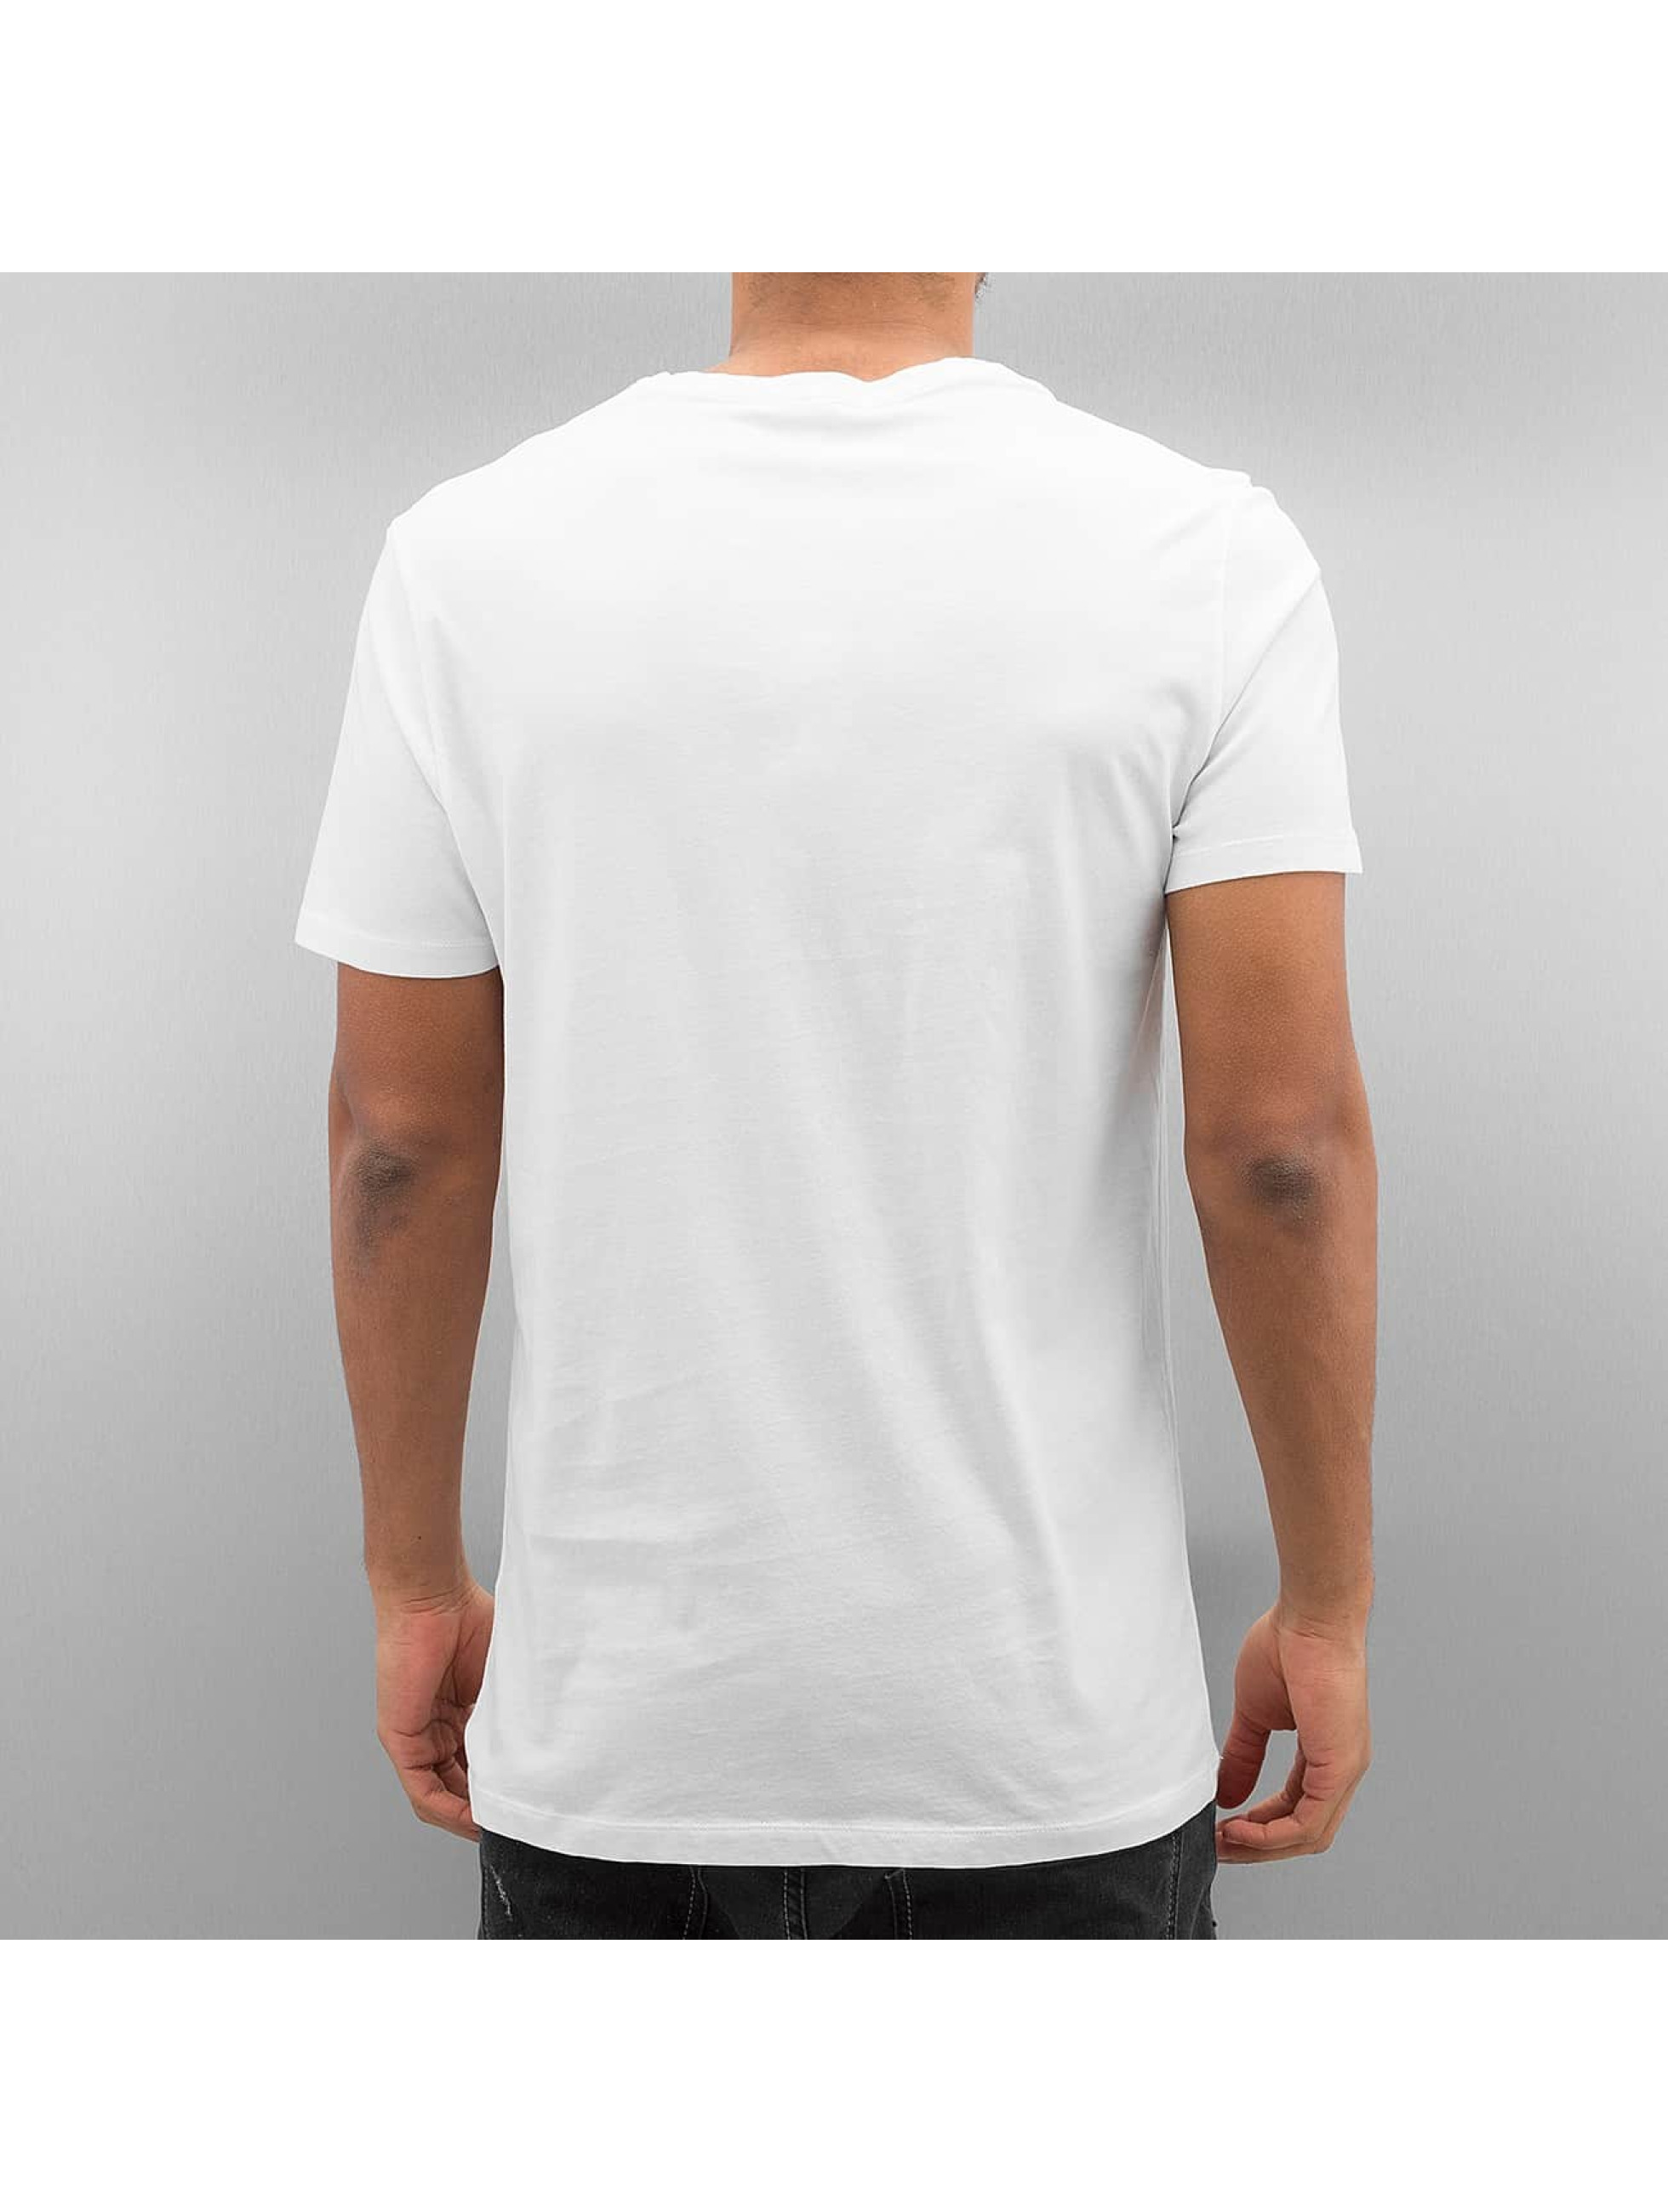 French Kick T-Shirt Oops white